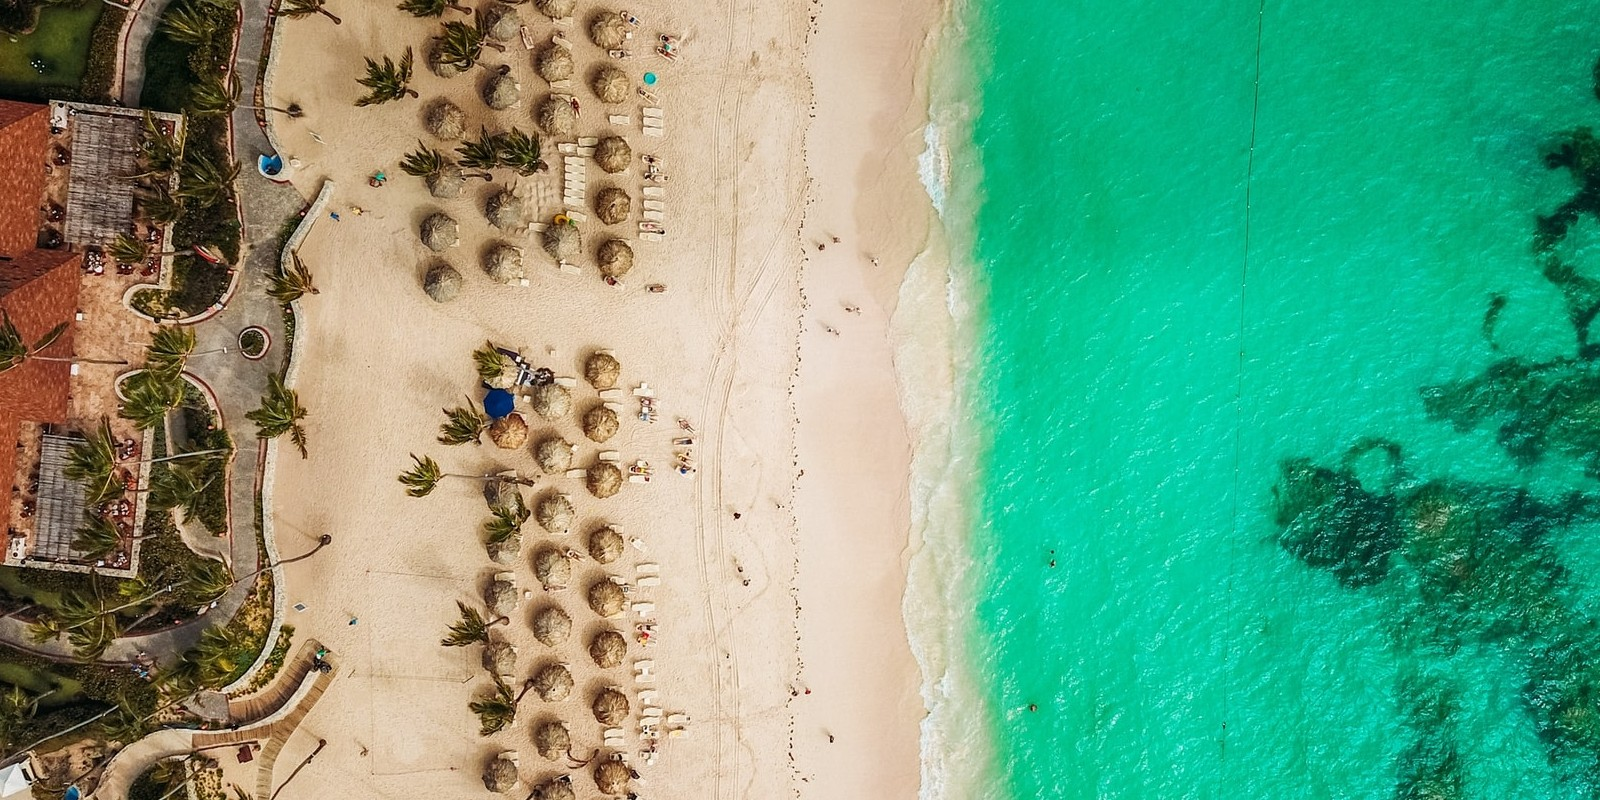 Aerial shot of the Dominican Republic Caribbean coastline